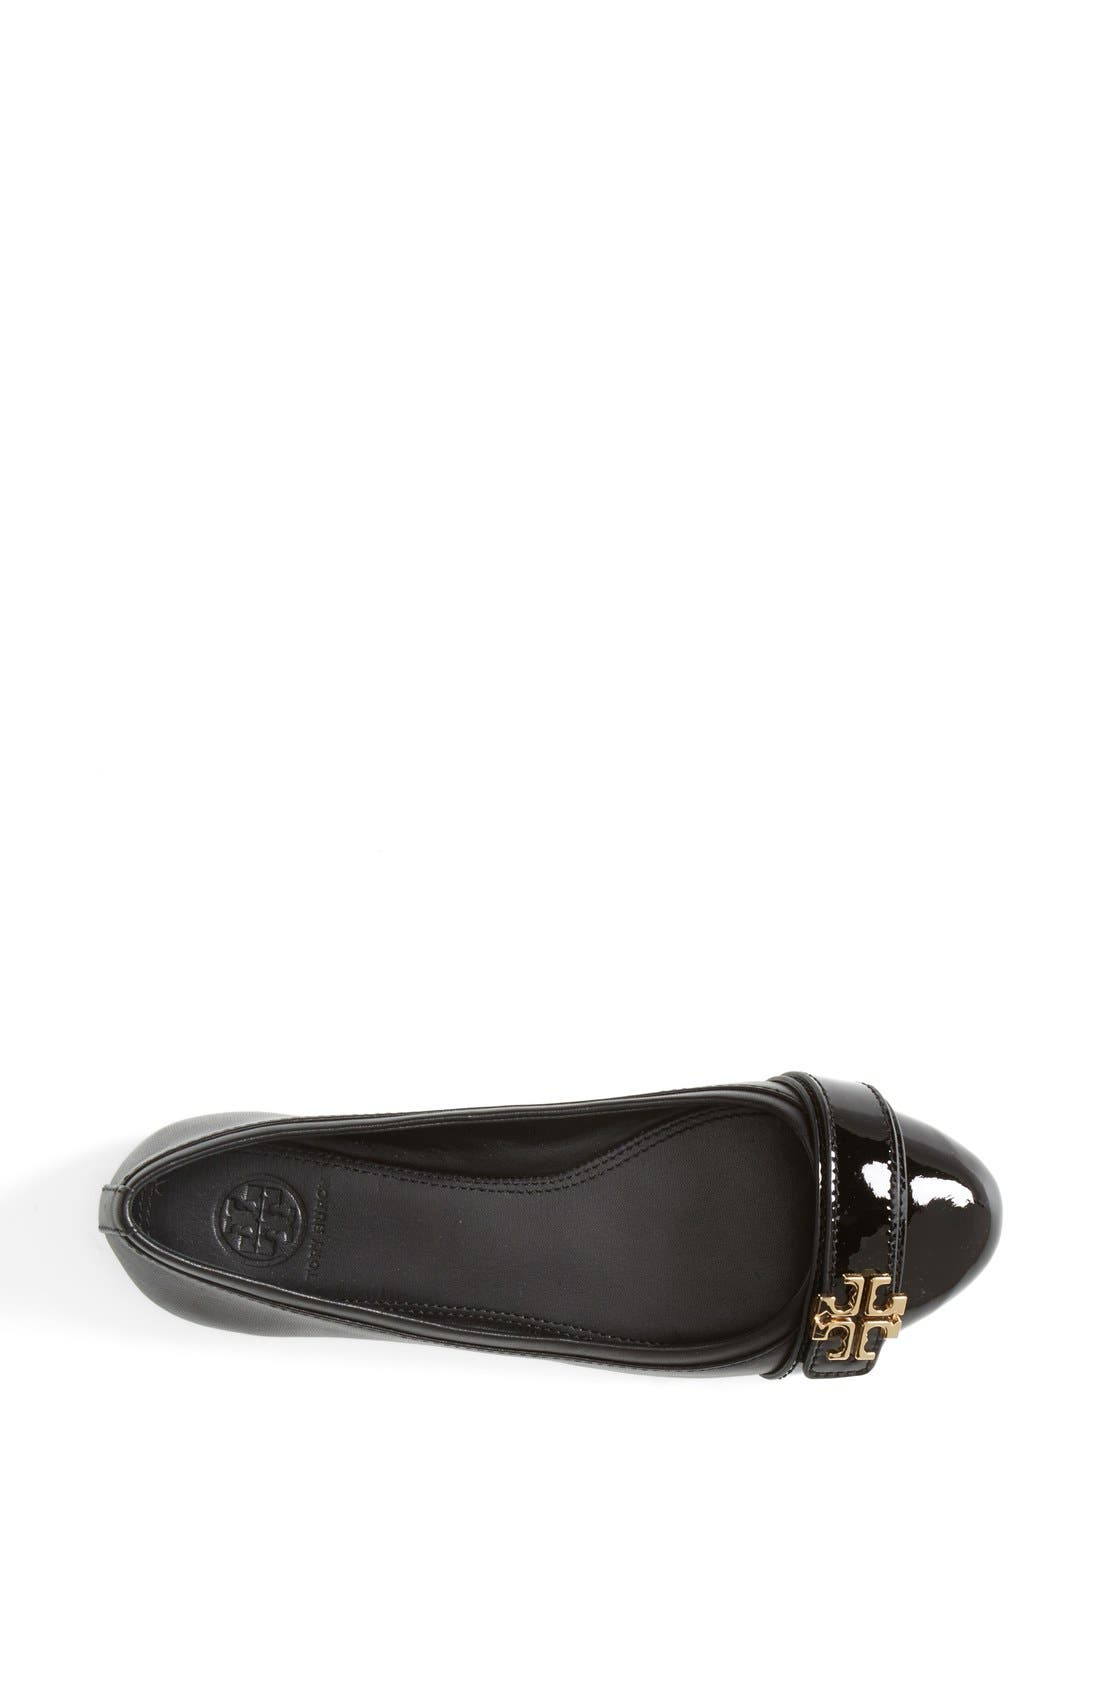 Alternate Image 3  - Tory Burch 'Eloise' Ballet Flat (Women)